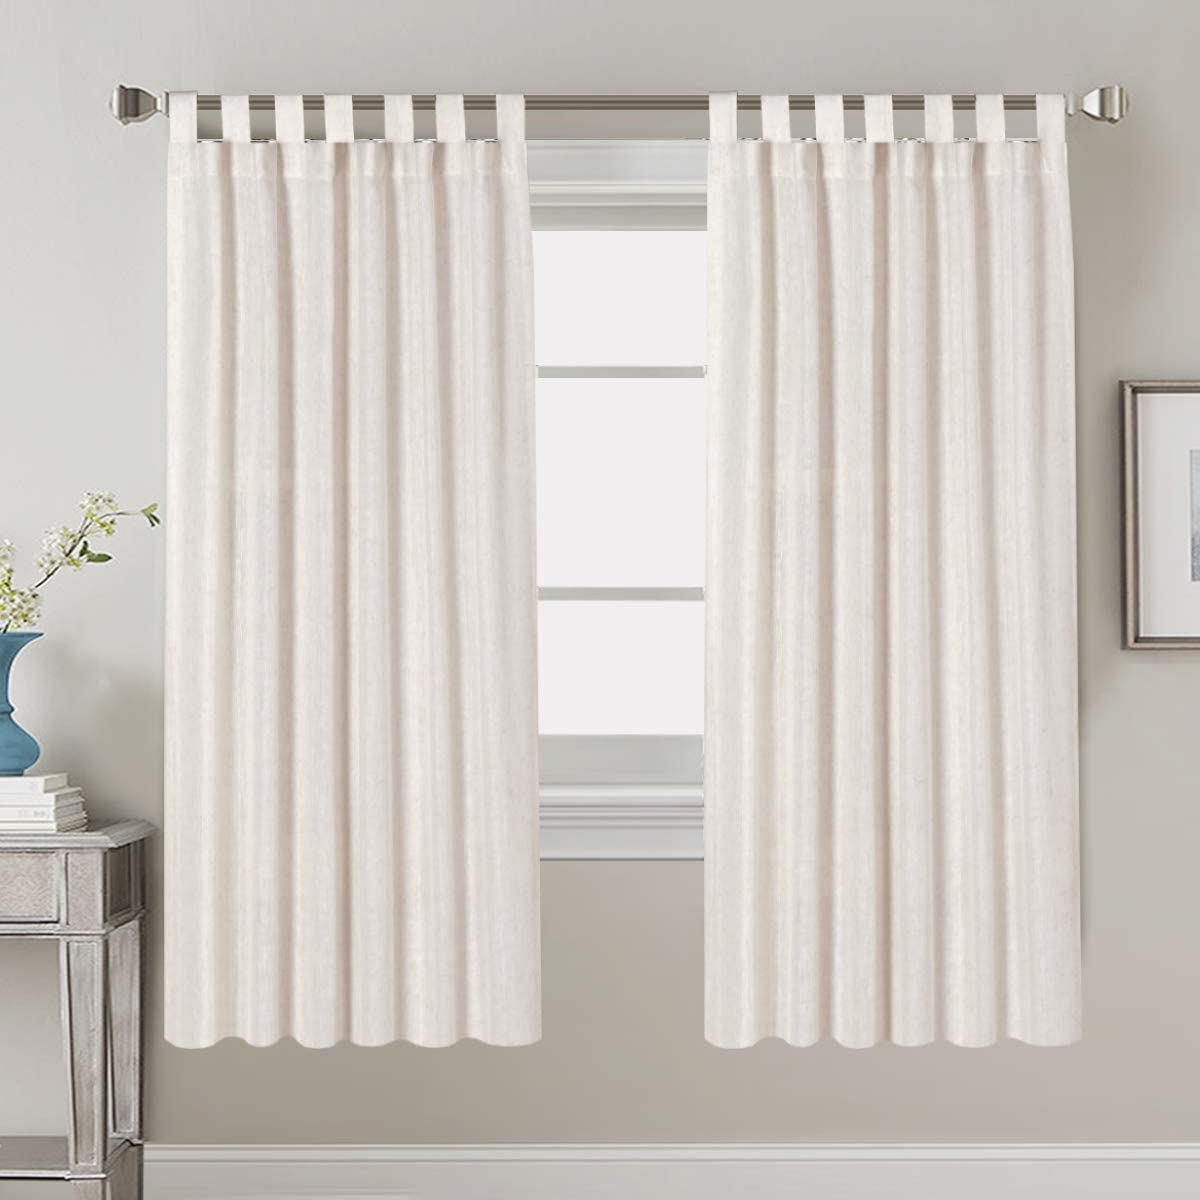 Living Room Linen Curtains Home Decorative Tab Top Curtains Privacy Added Energy Saving Light Filtering Window Treatments Draperies for Bedroom, 2 Panels, 52 x 63 - Inch, Natural